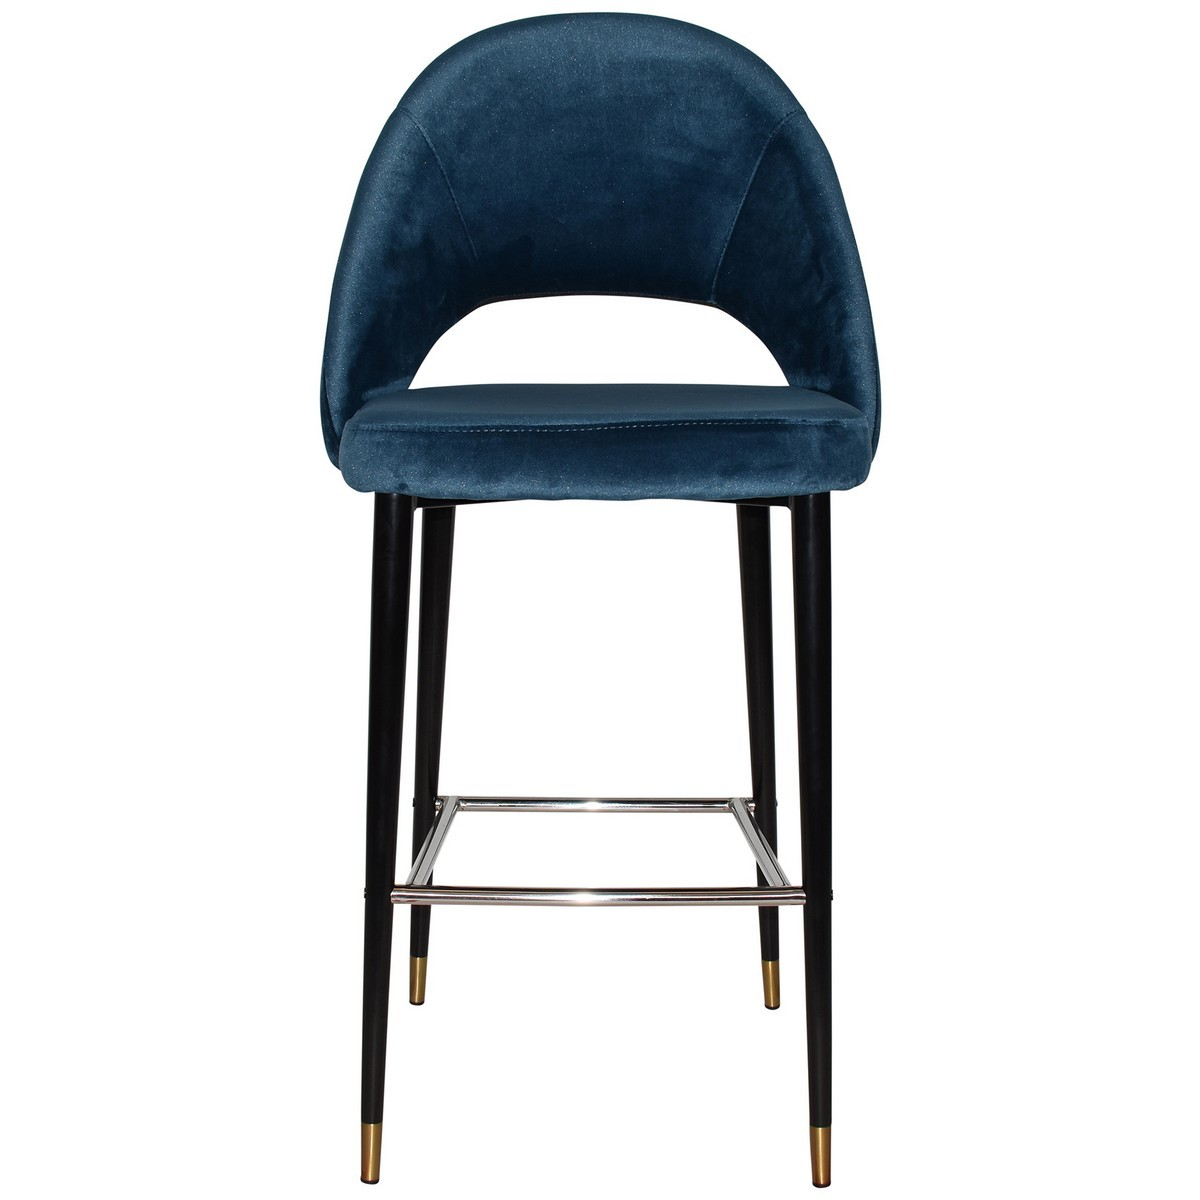 Chevron Commercial Grade Fabric Bar Stool, Metal Leg, Velvet Blue / Black Brass